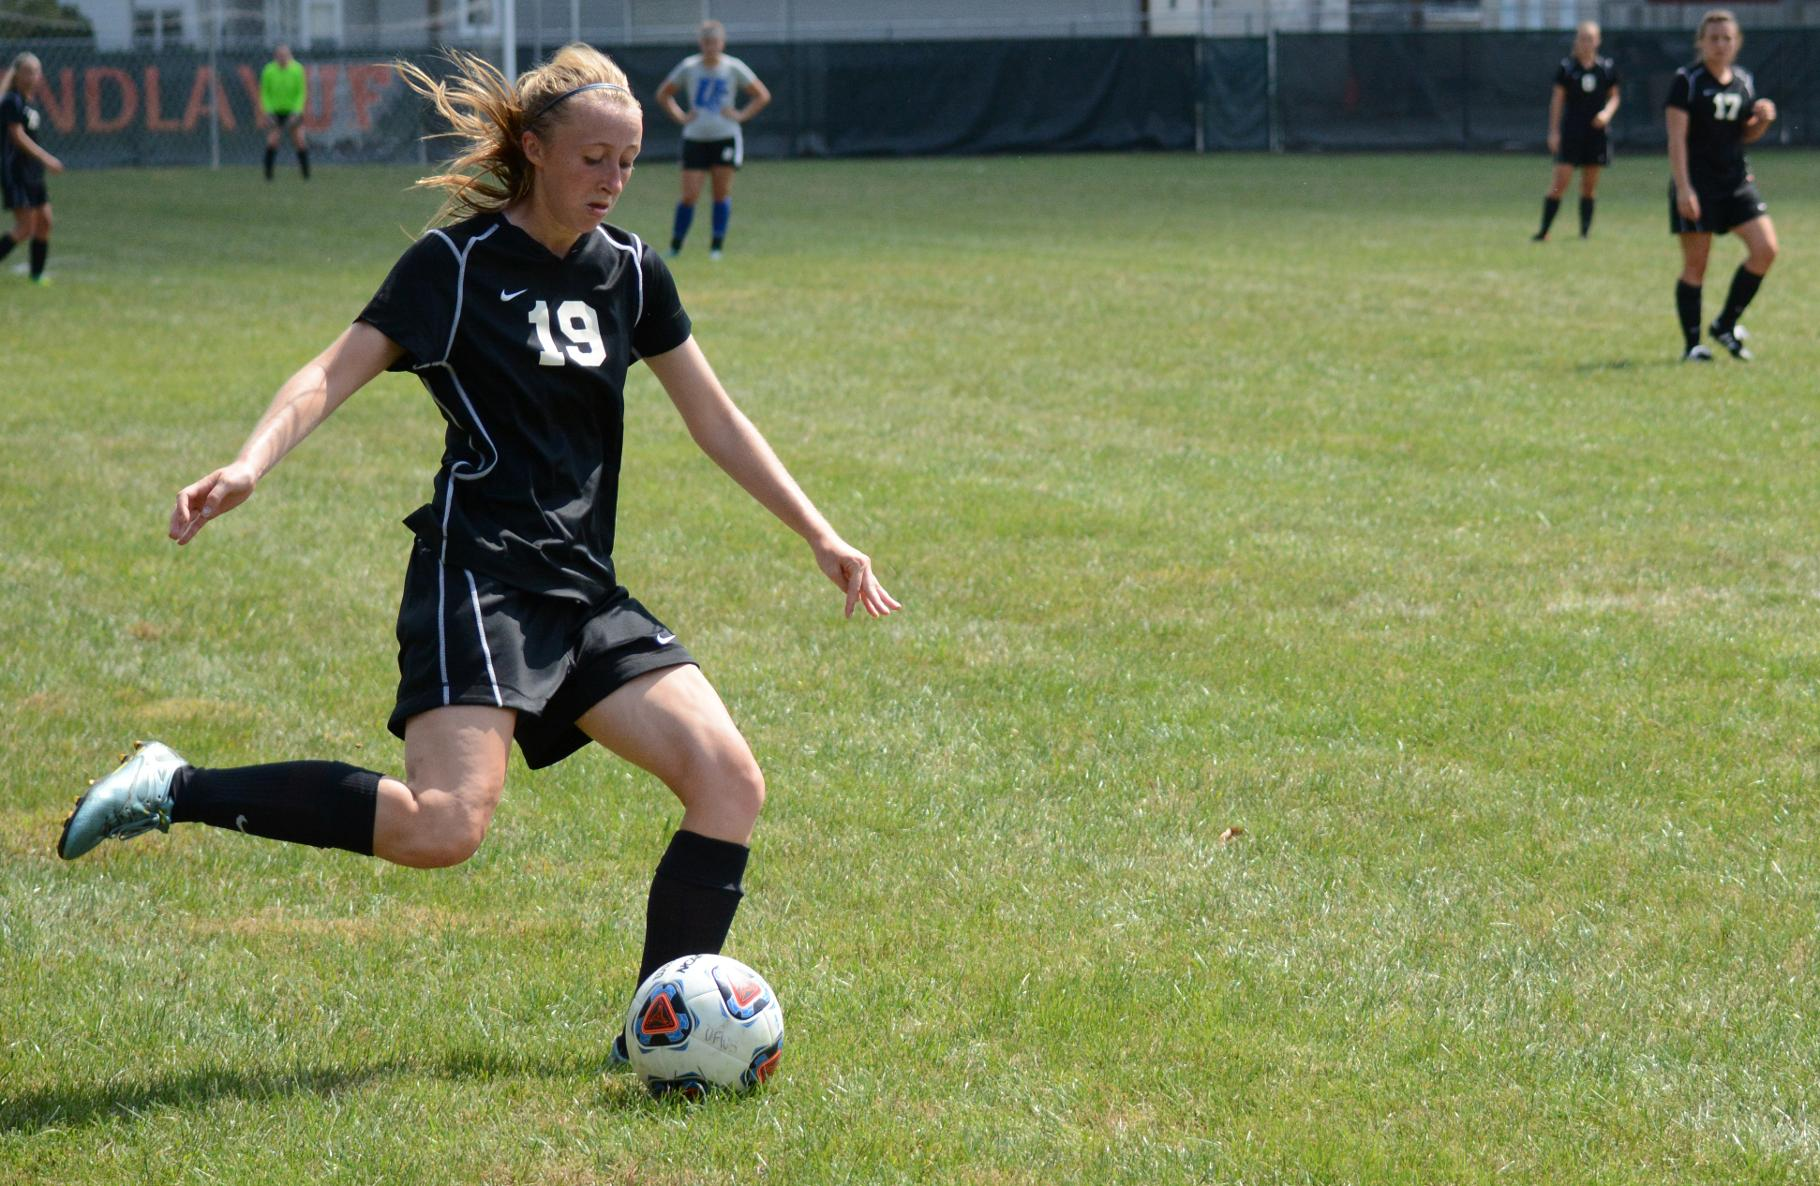 Findlay Falls 2-1 to Saginaw Valley